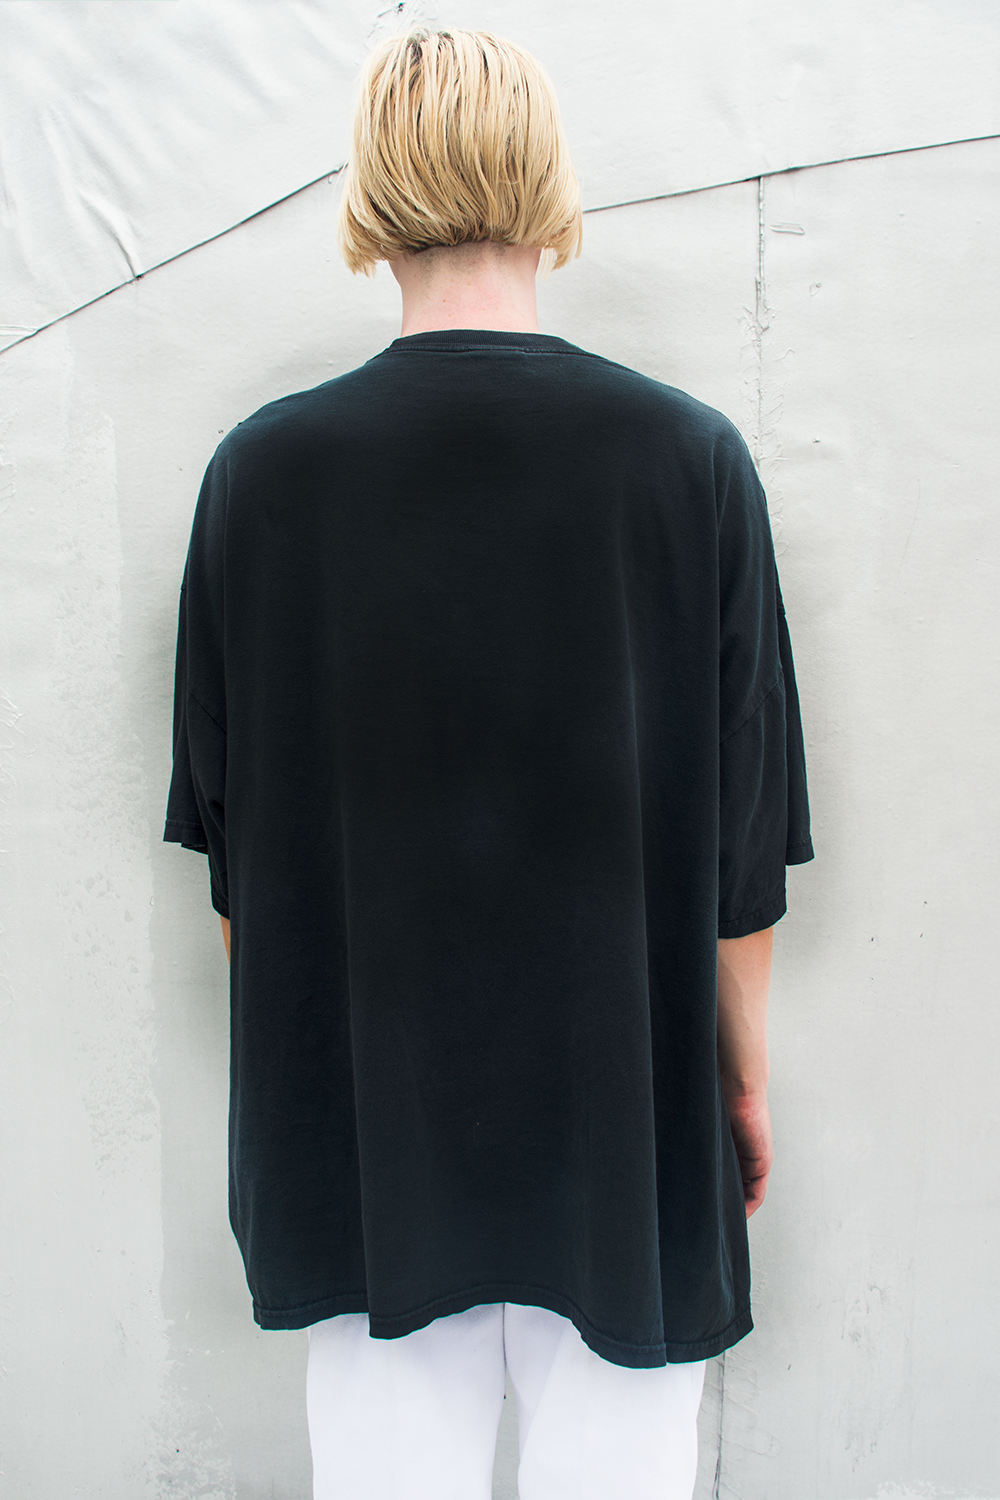 vintage oversized black t-shirt